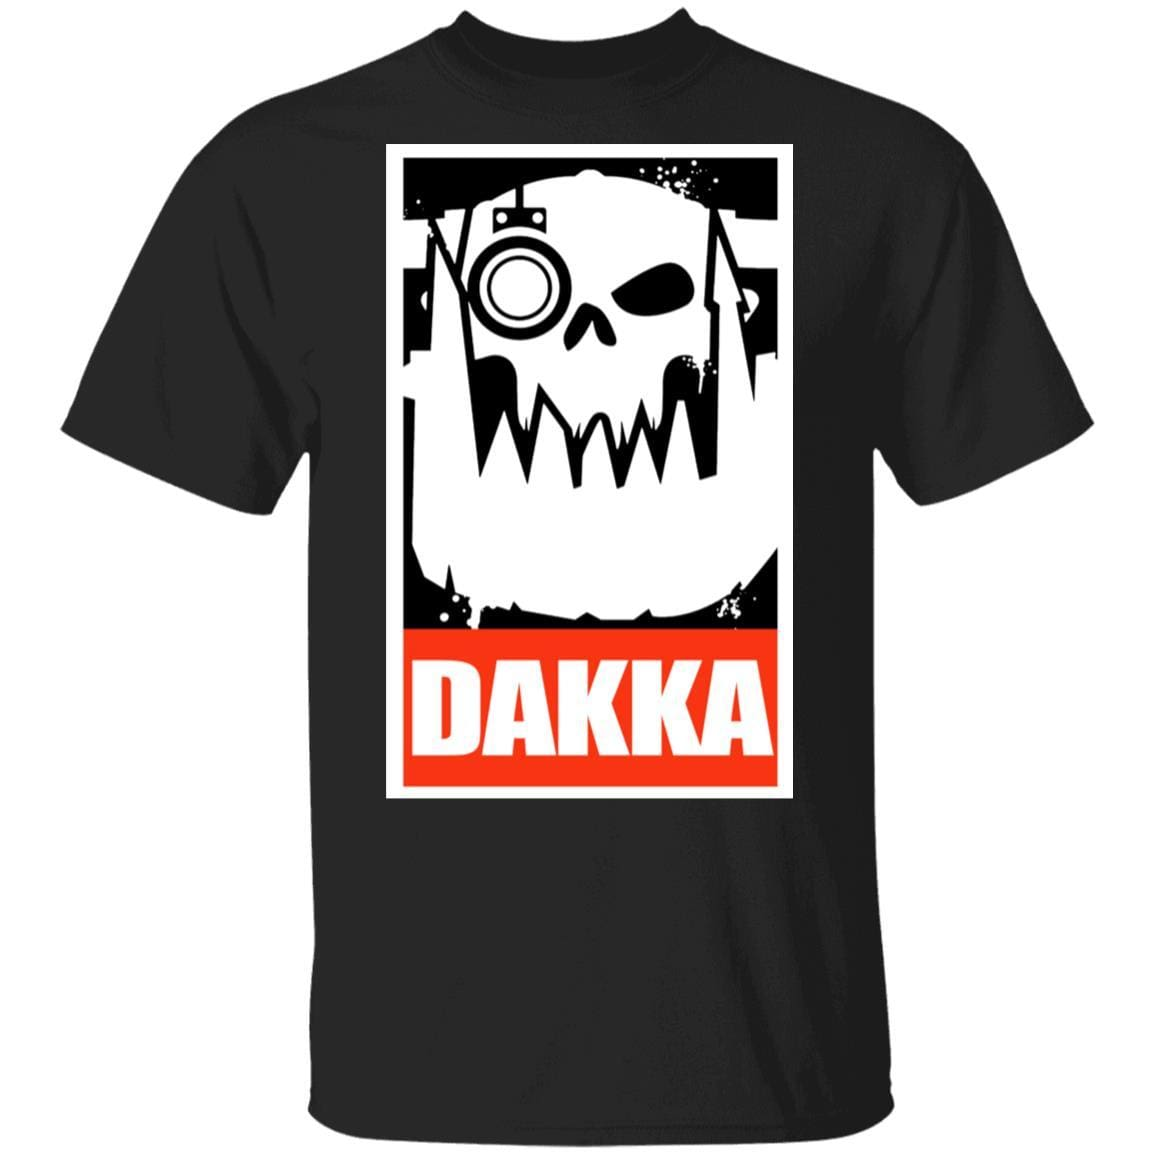 Orks Dakka Tabletop Wargaming And Miniatures Addict T-Shirts, Hoodies 1049-9953-88767417-48144 - Tee Ript